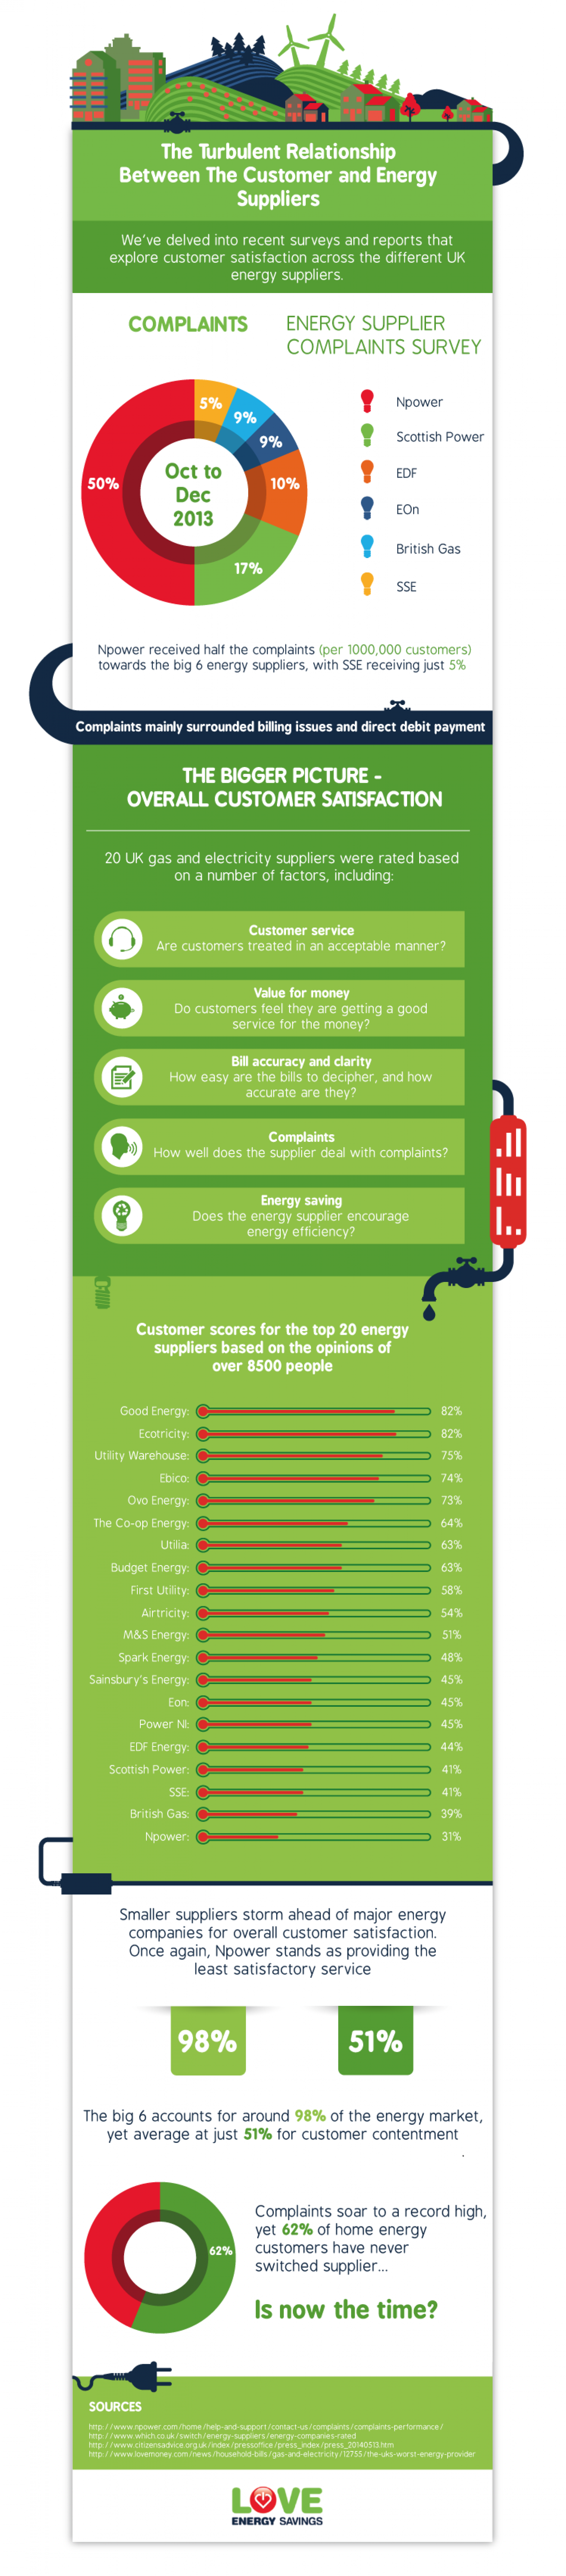 The Turbulent Relationship Between the Customer and Energy Suppliers Infographic